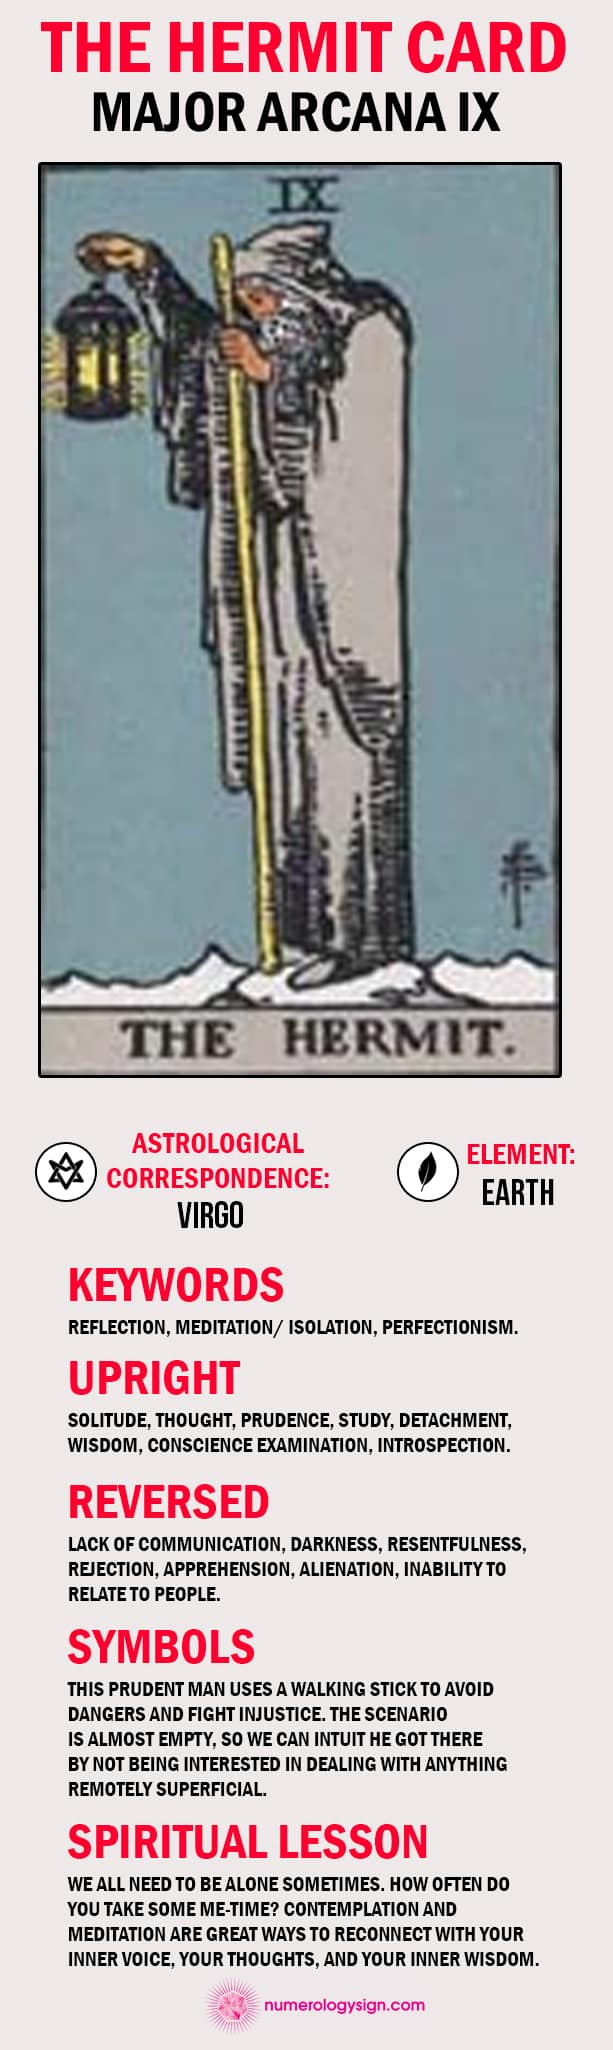 The Hermit Tarot Card Meaning Infographic